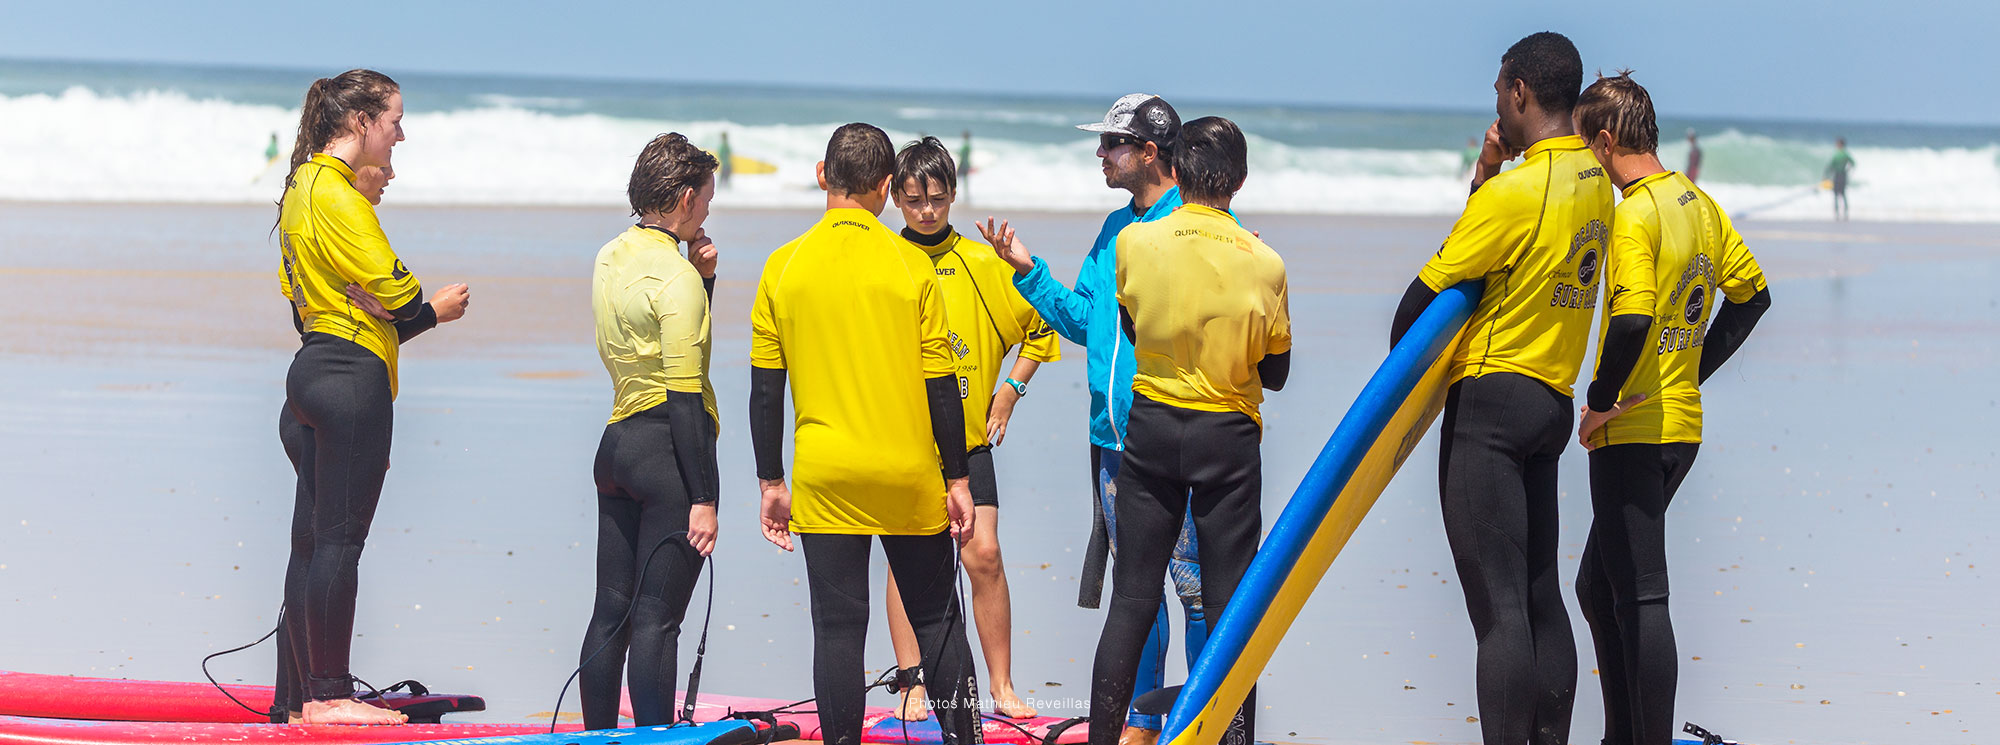 groupe surfeurs coco surf